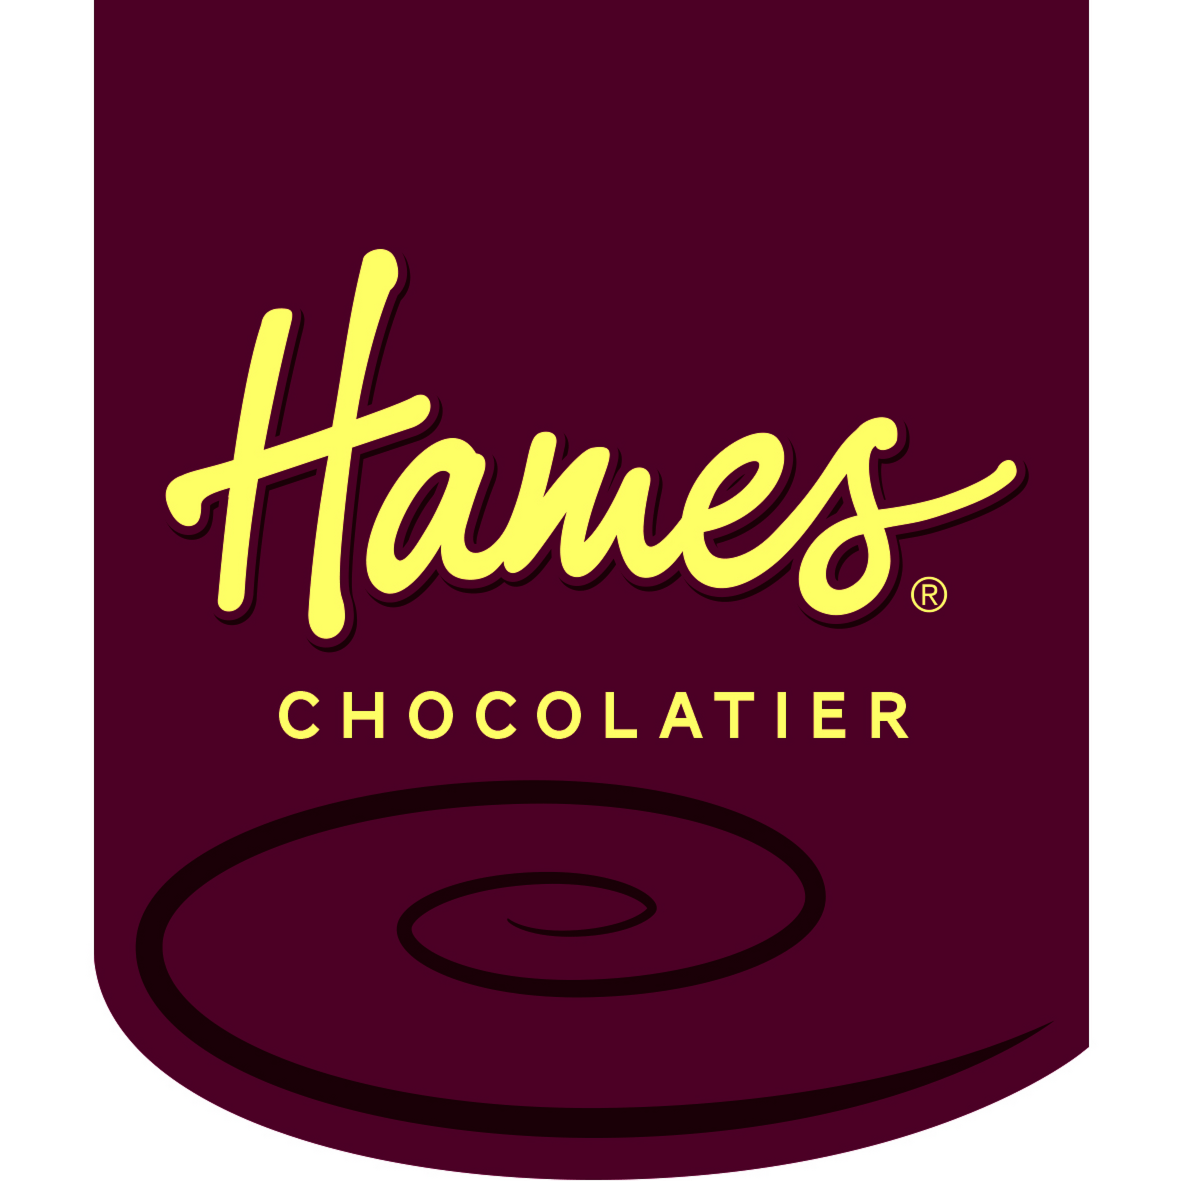 Hames Chocolates Ltd